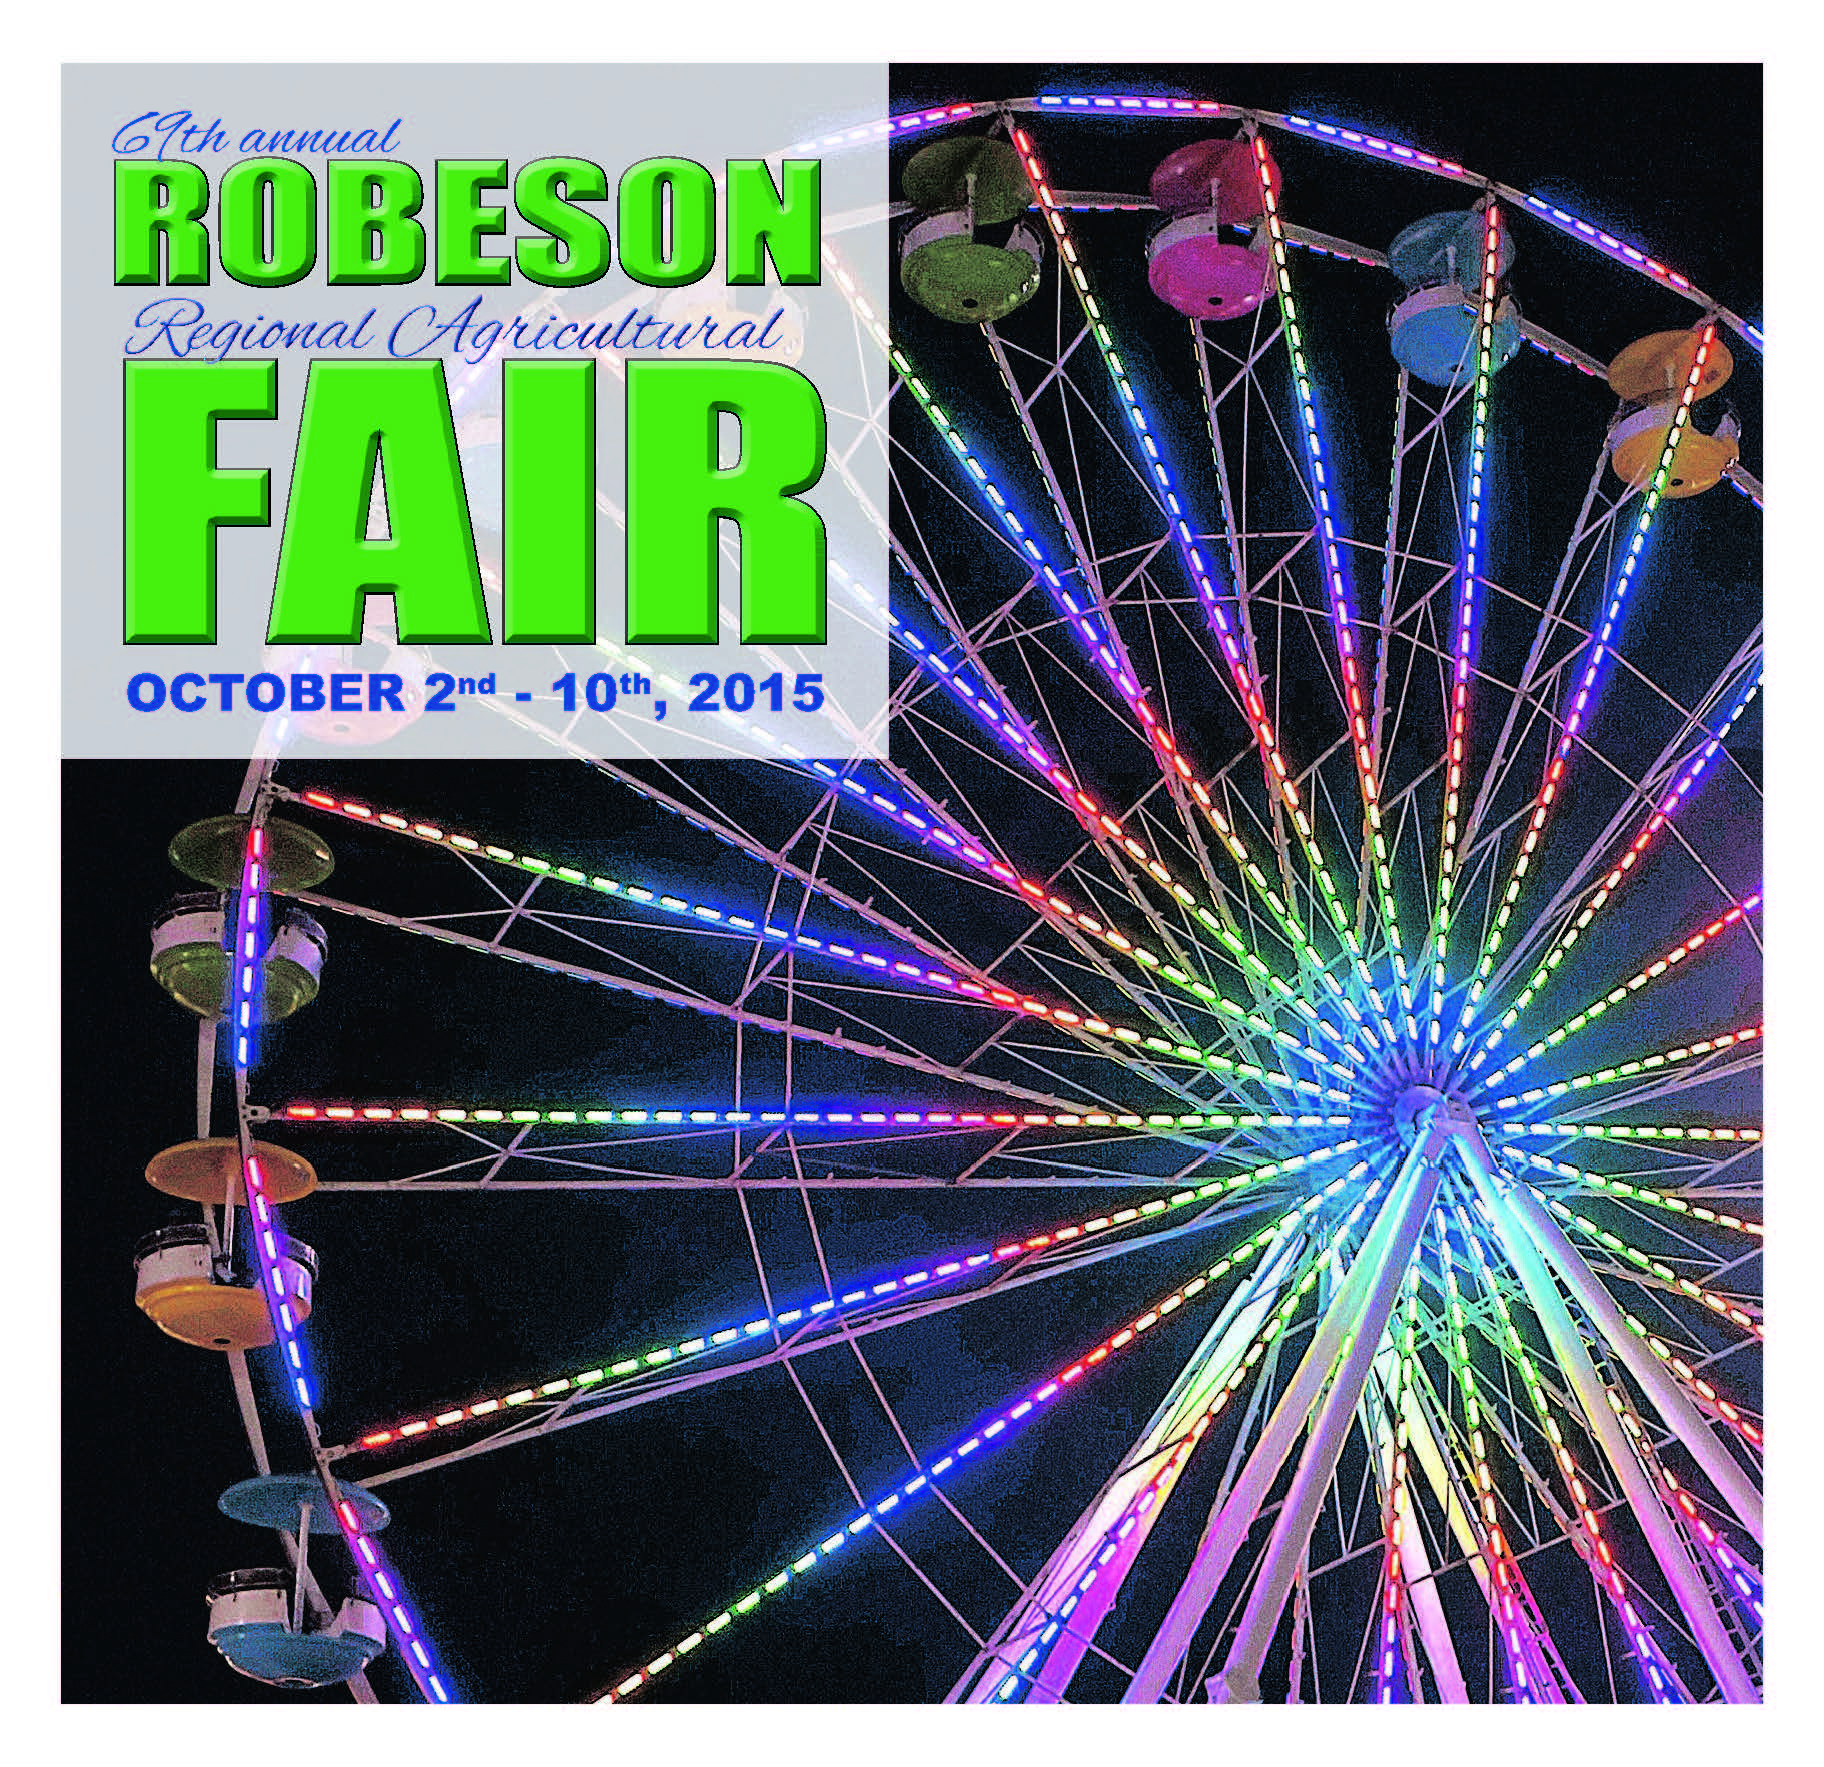 69th Annual Robeson Regional Agricultural Fair